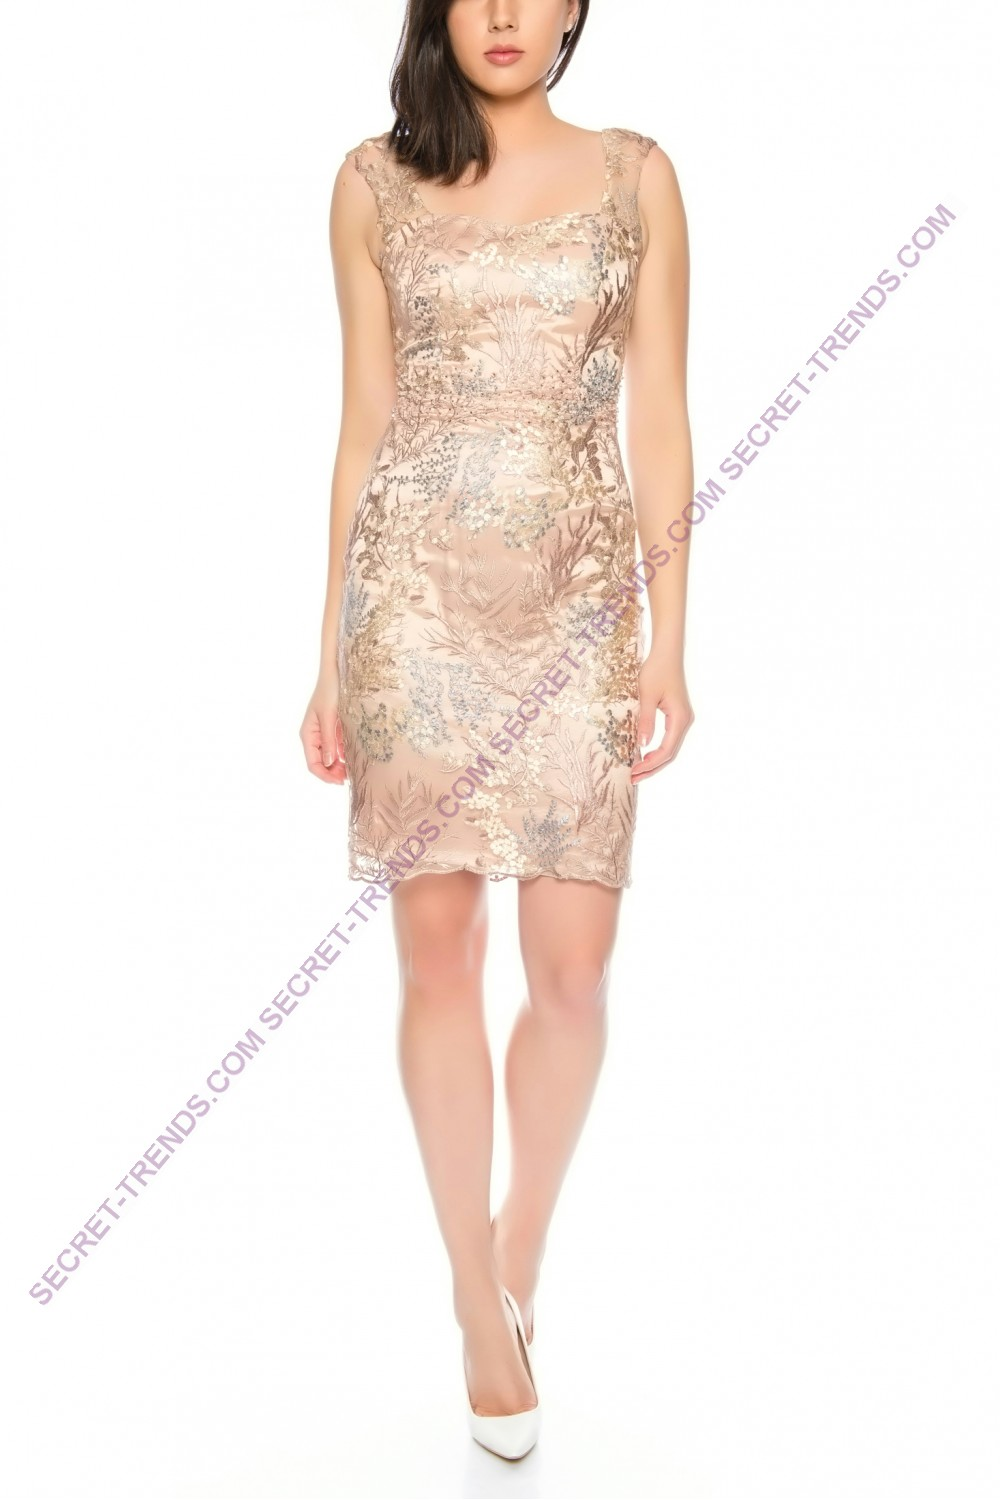 High-quality cocktail dress with floral embroidery and straps from ...